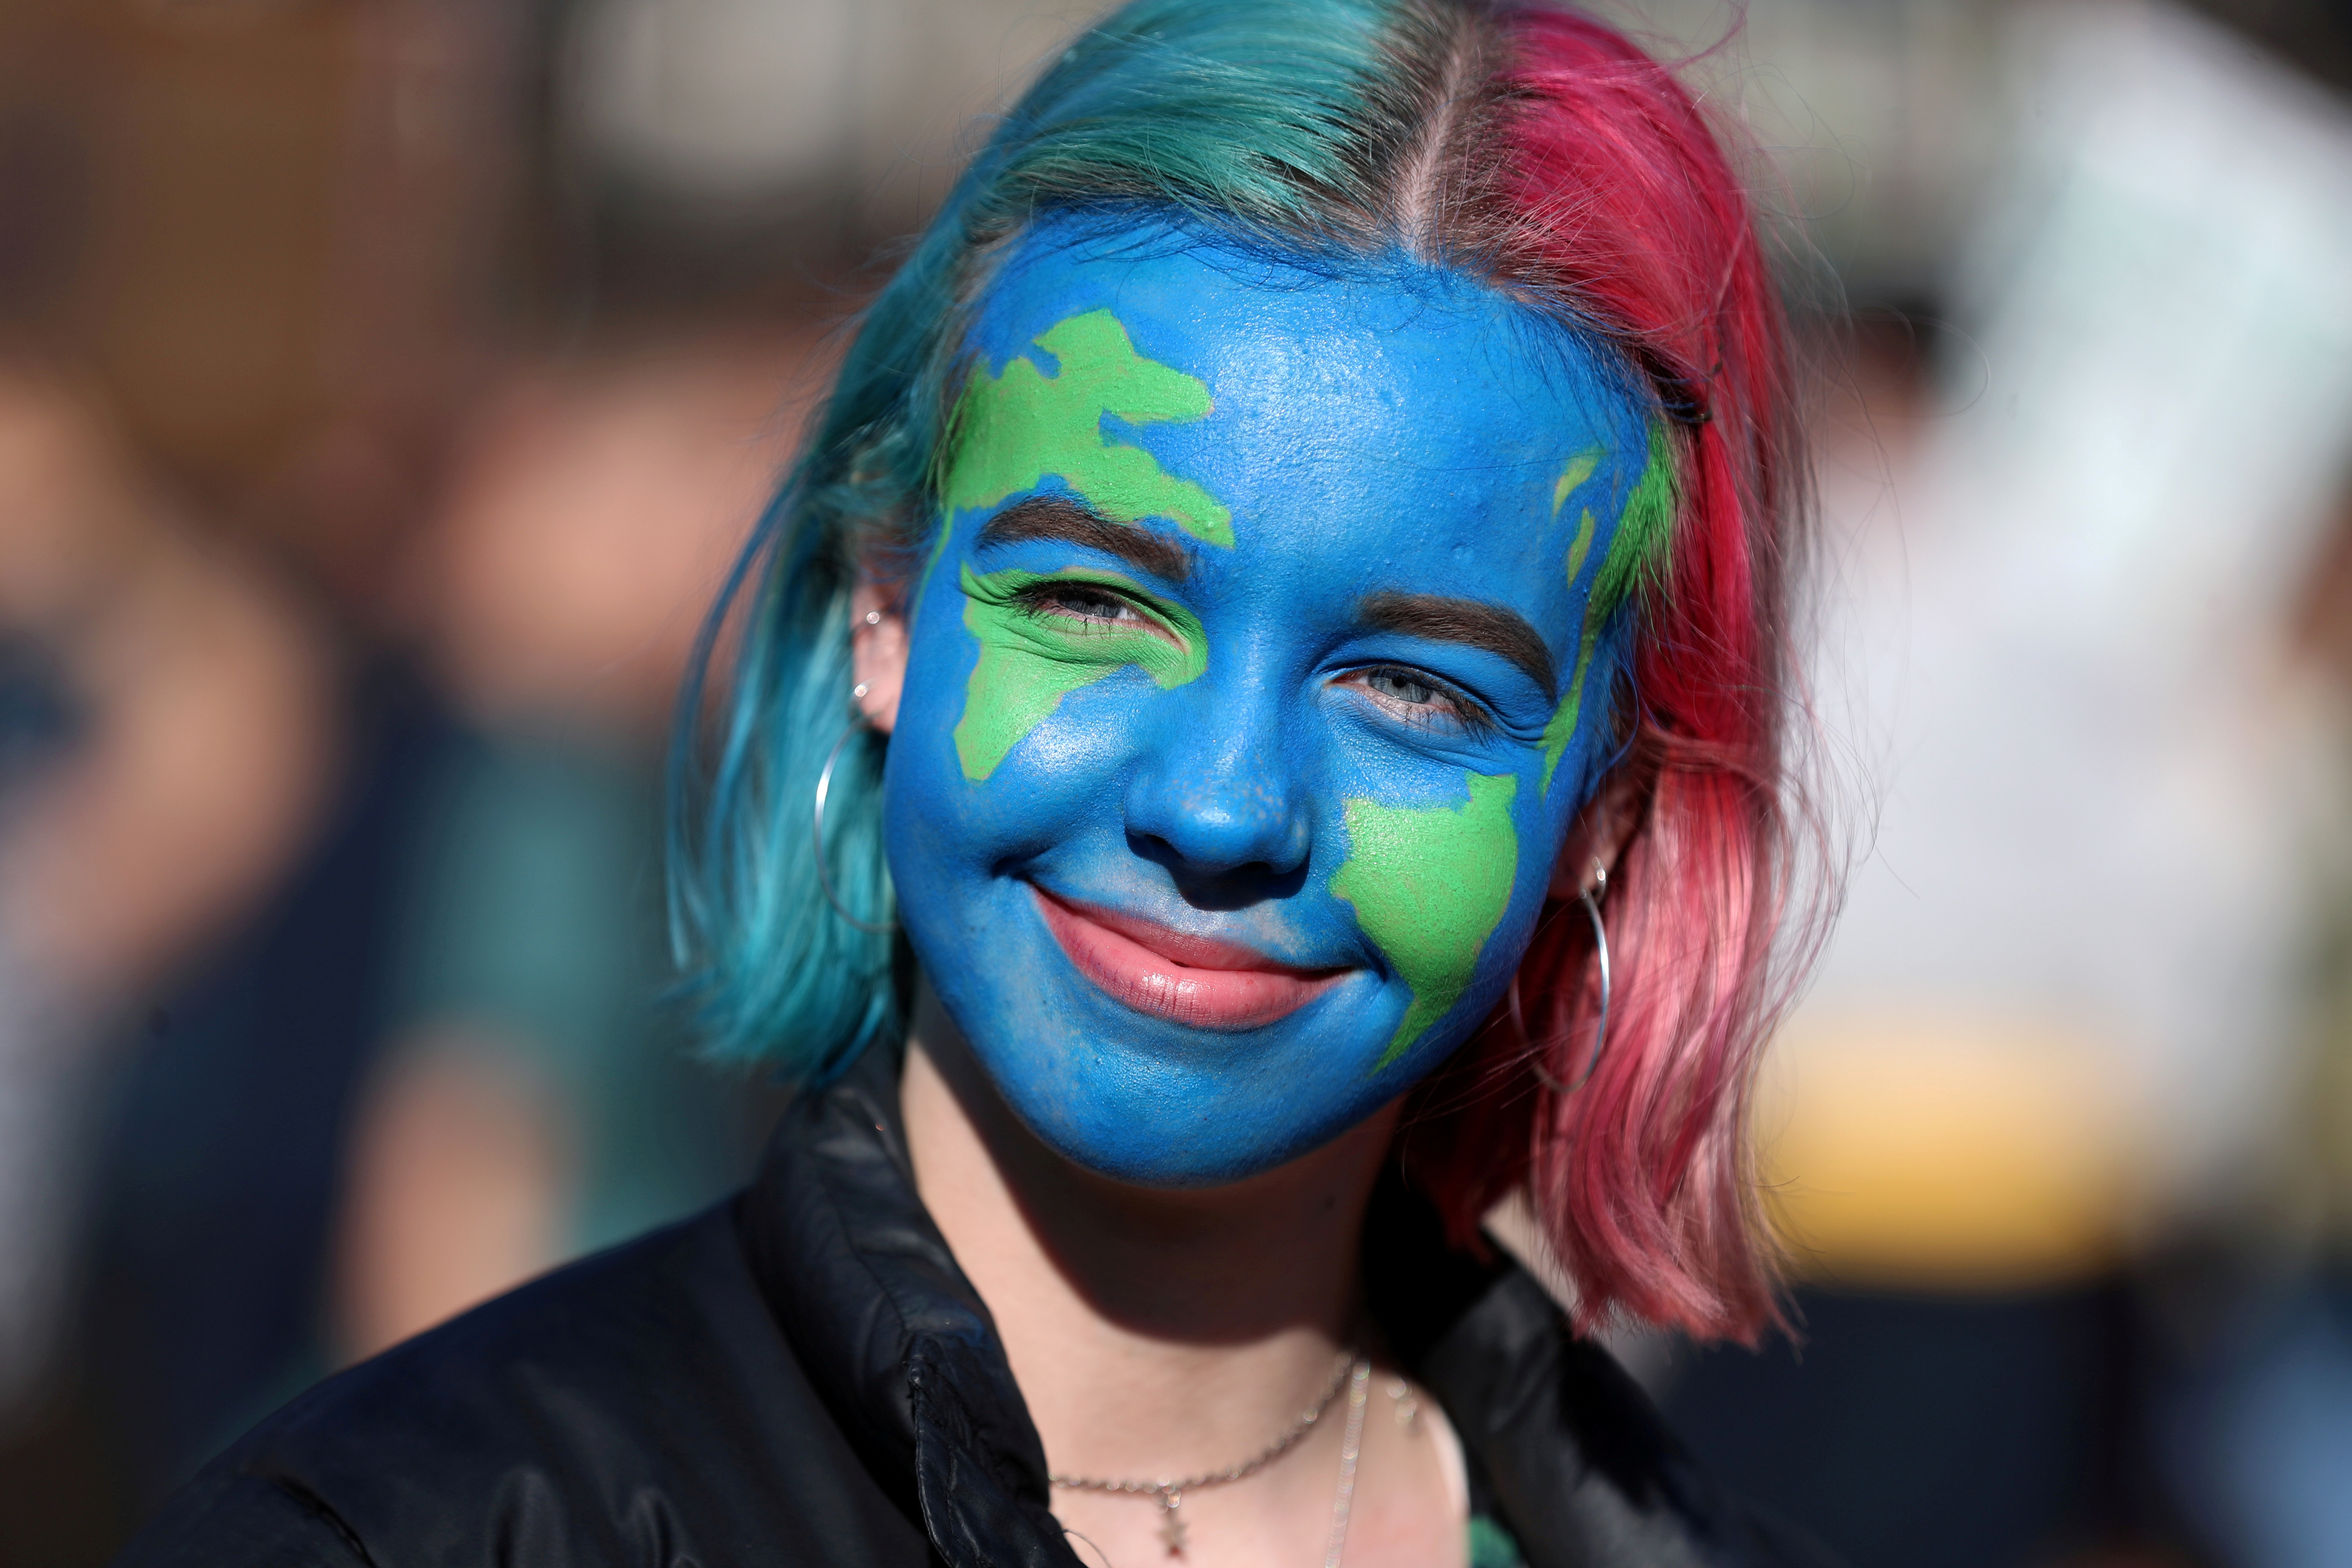 """A girl looks on as people take part in a """"youth strike for climate change"""" demonstration in London, Britain February 15, 2019. REUTERS/Simon Dawson     TPX IMAGES OF THE DAY - RC18EDC3F400"""